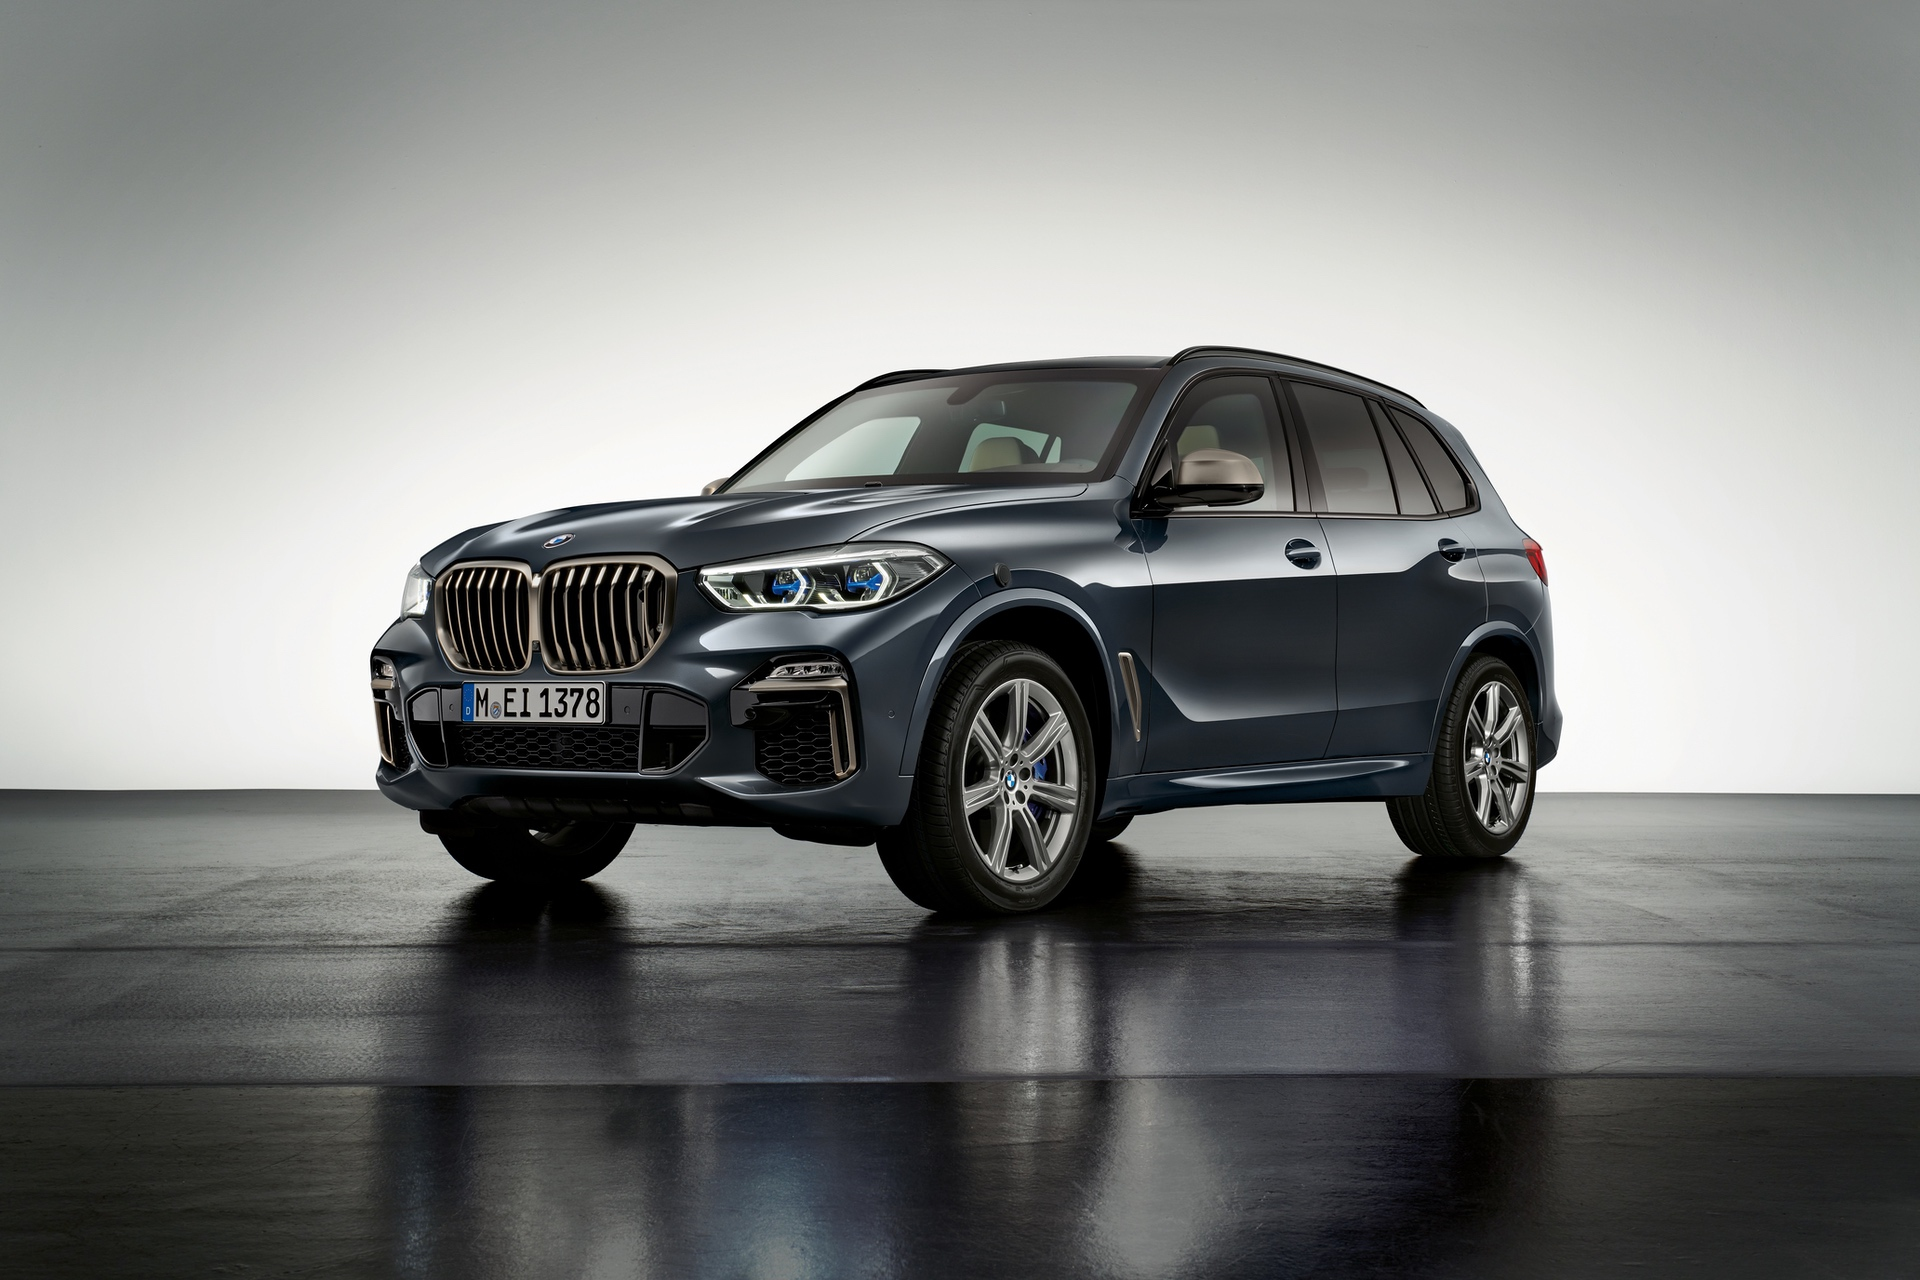 BMW X5 Protection VR6 armored 0